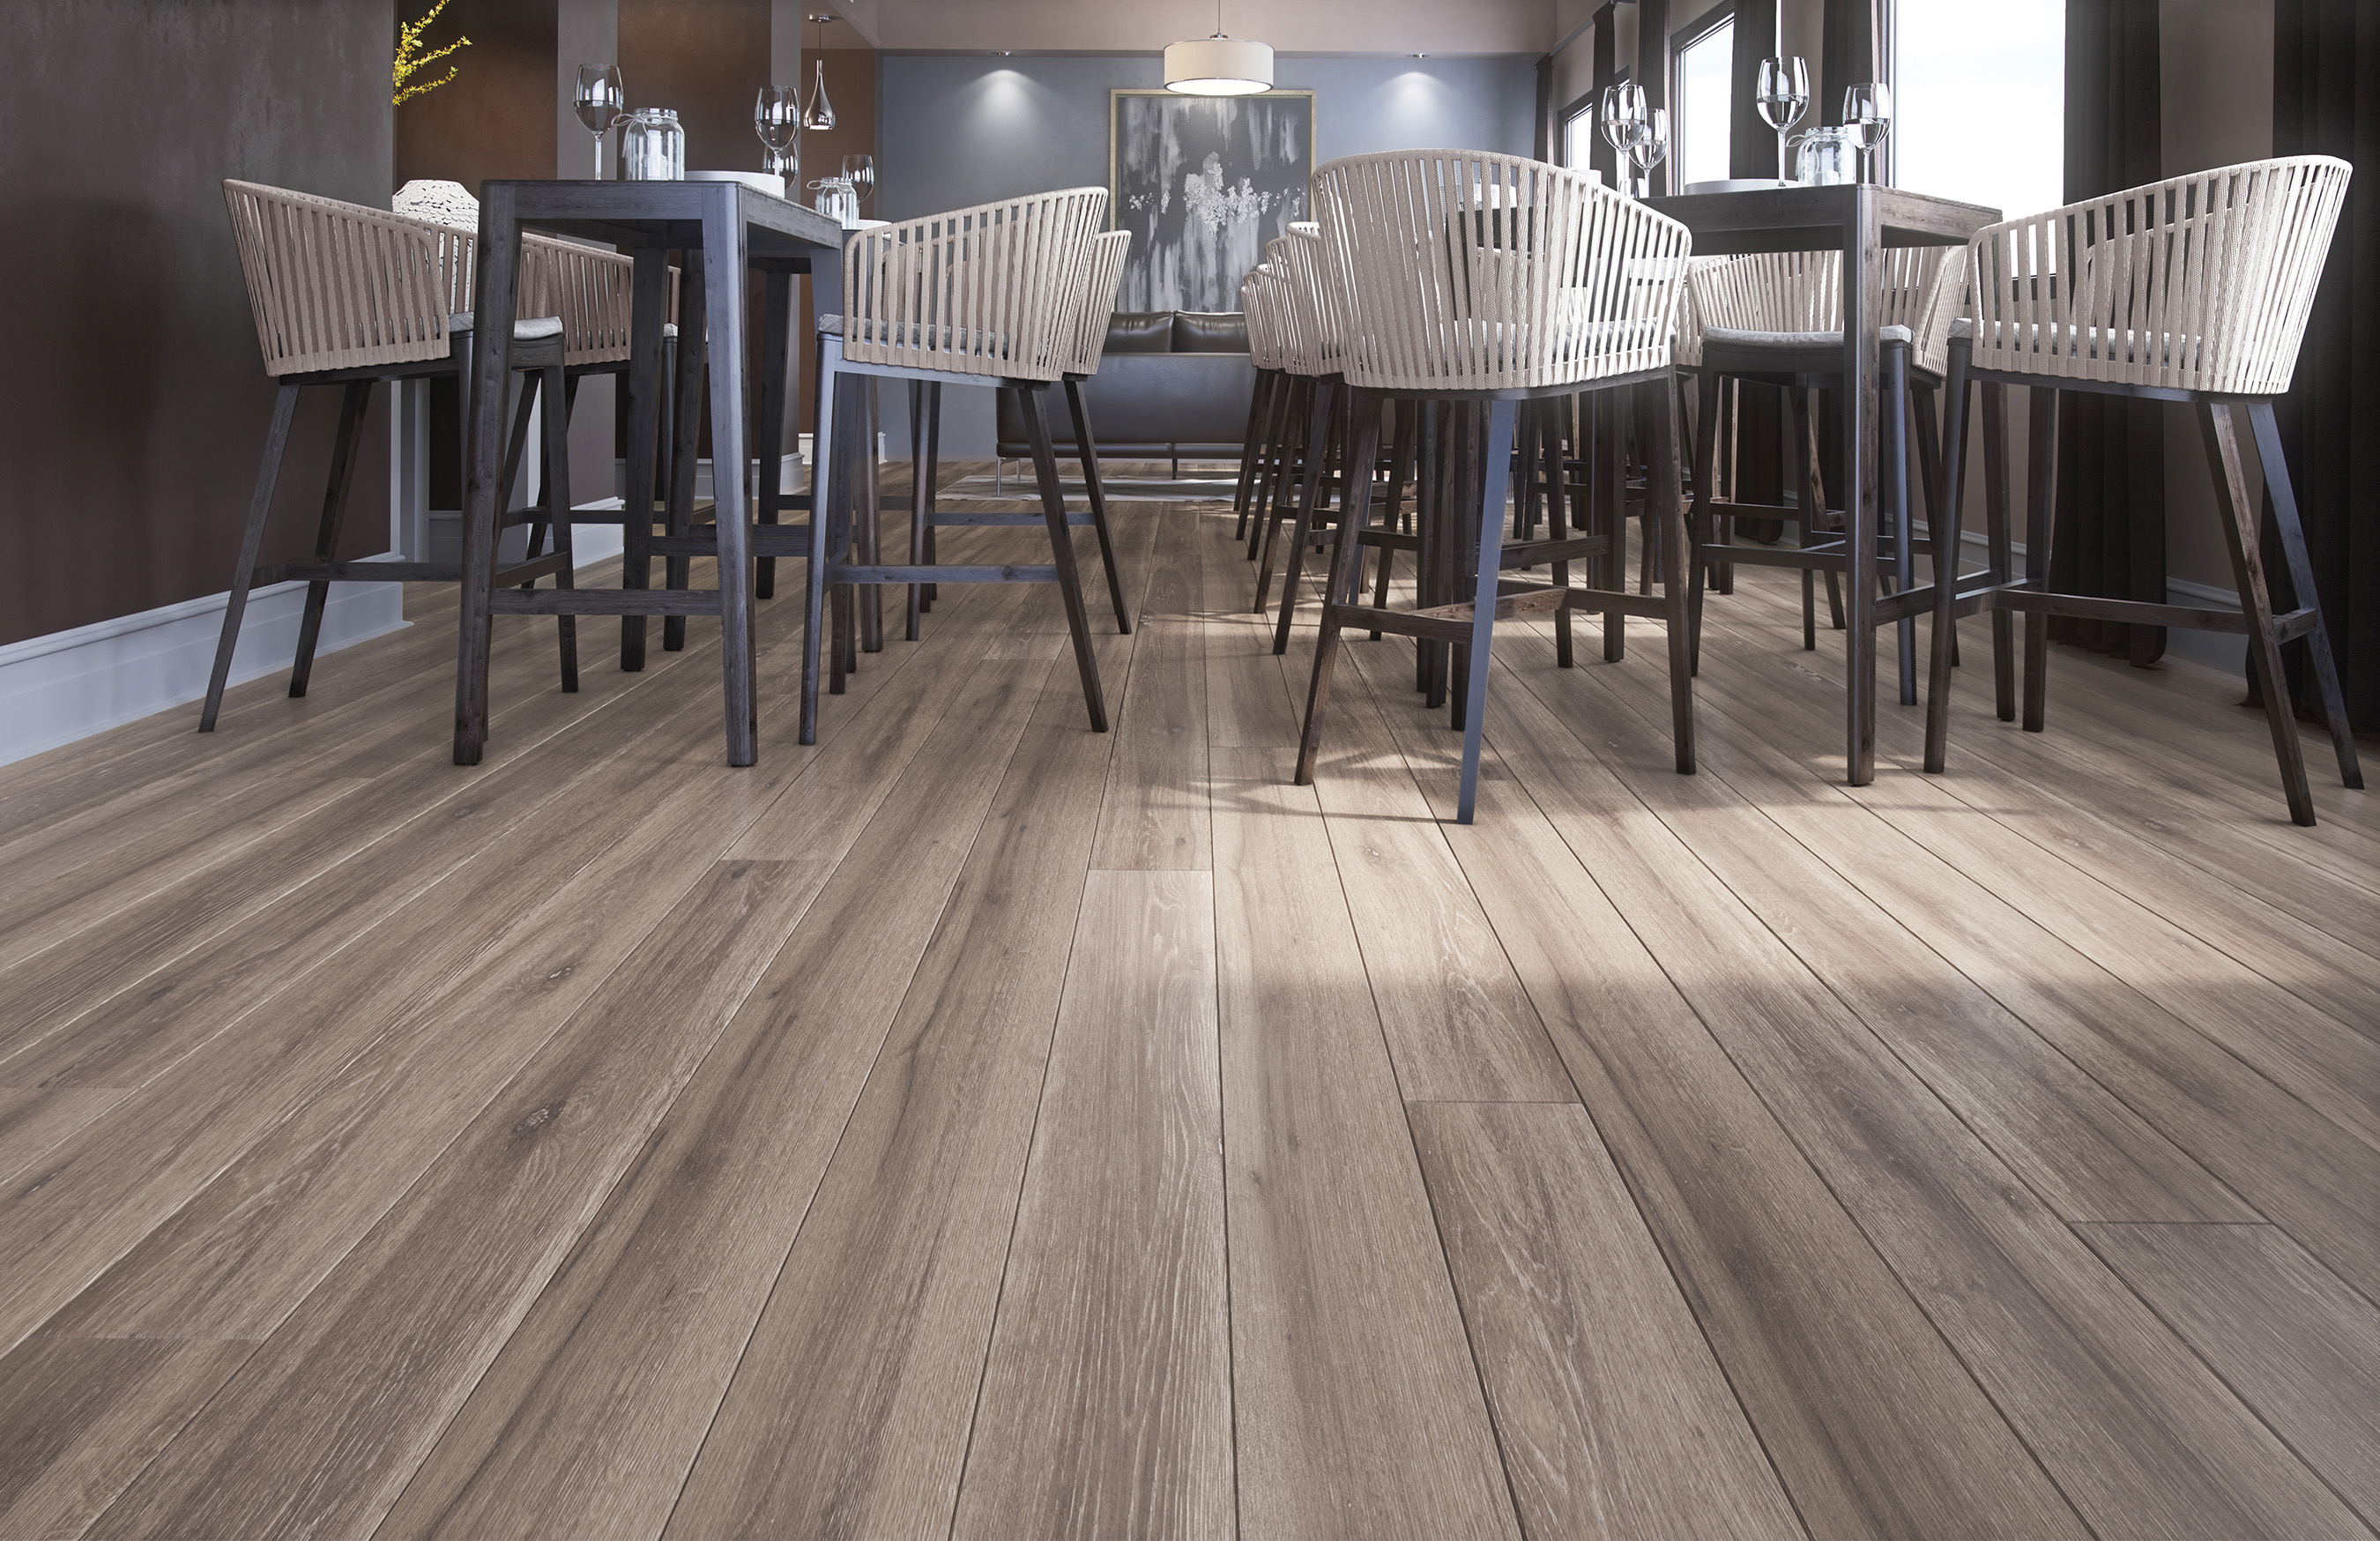 Torlys Launches The Floor That Has It All